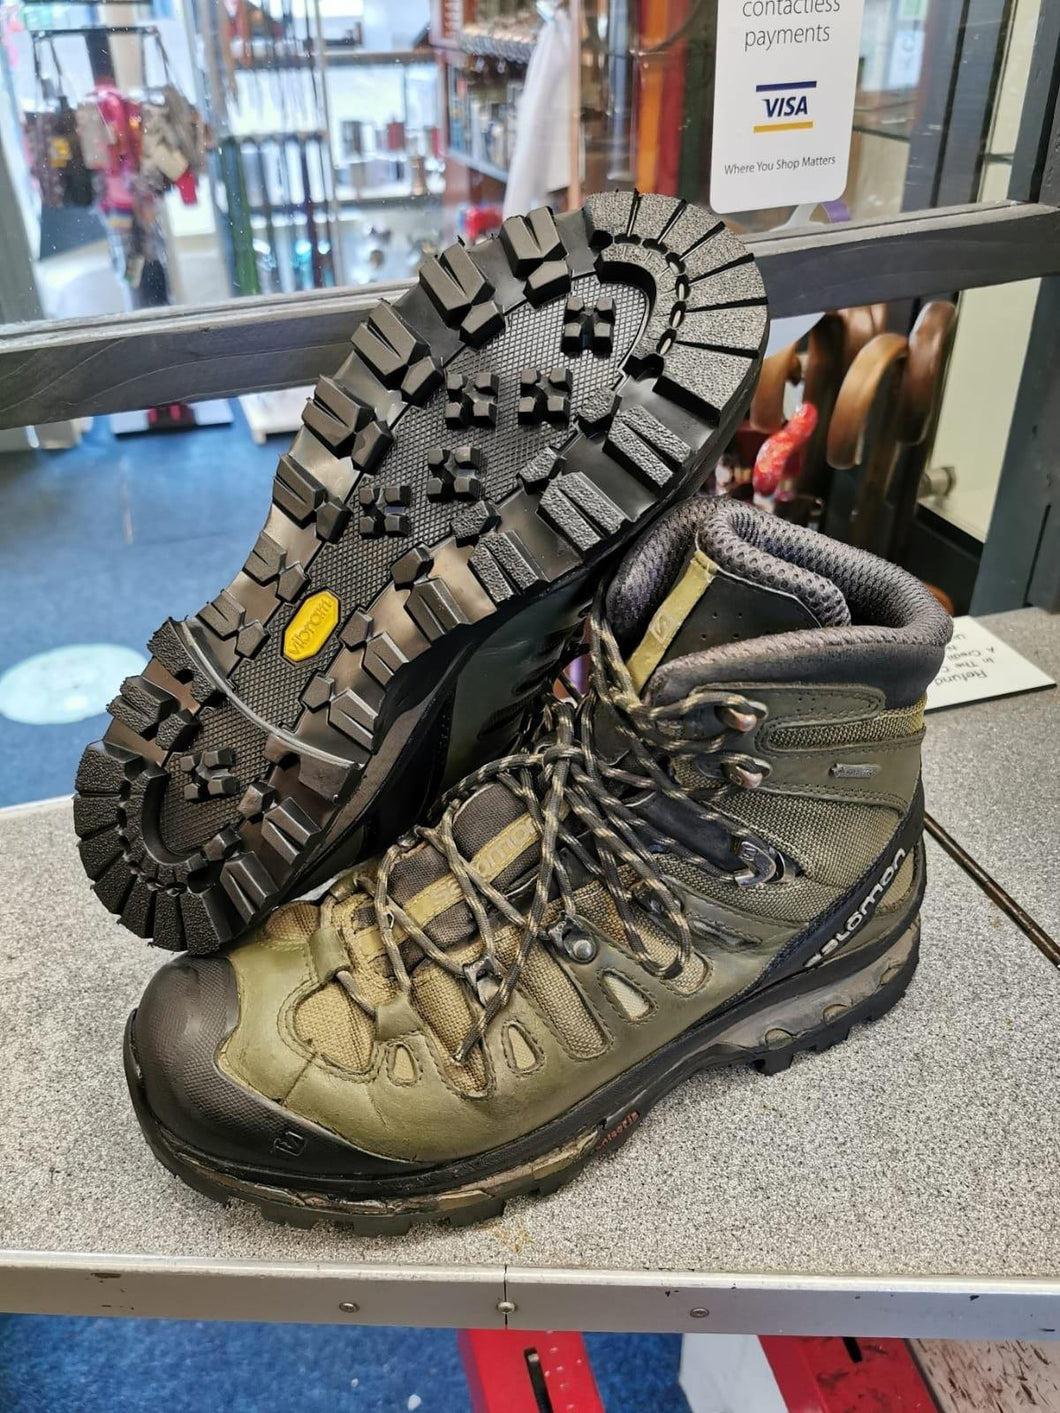 Vibram Teton - The Key Cobbler